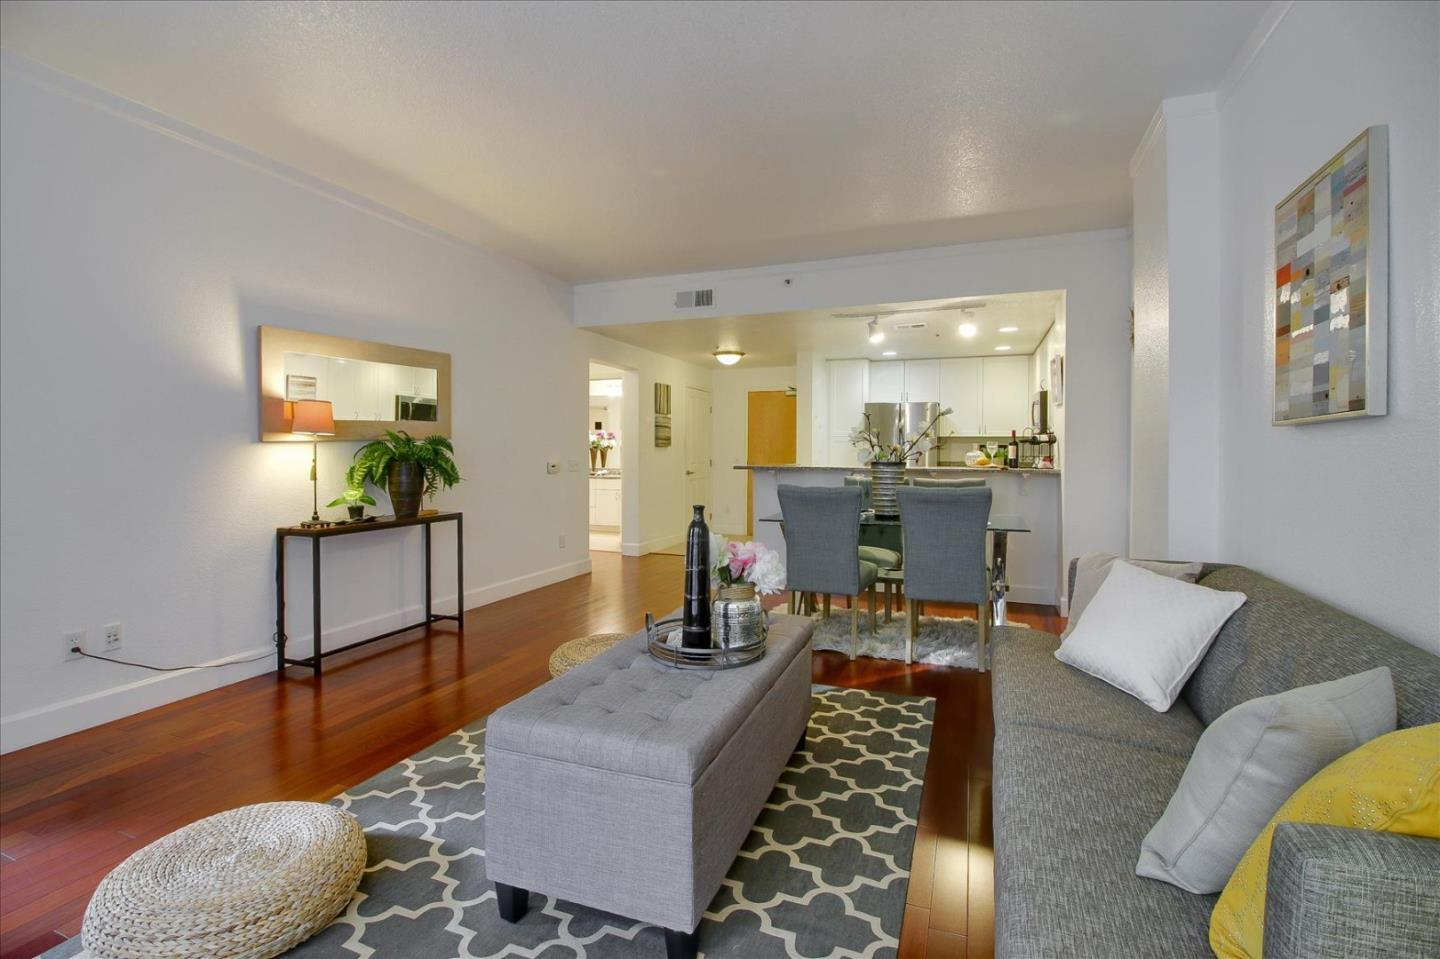 Top Cupertino Schools!!Luxury Montebello High-Rise@corner of Stevens Creek/De Anza.1BR/1BA+Balcony.LargeDR/LR Combo.Master w/walk-in Closet.Specious kitchen w Granite Counter tops and breakfast Bar.Inside Laundry,Central A/C,Secured underground parking w elevator.Minutes to Marina,Library,Parks,Restaurants,Shopping,Fwy 280/85.Close to Apple and jobs.Staged & Shows Great! Bonus feature:  Deeded storage room (very few units has this).